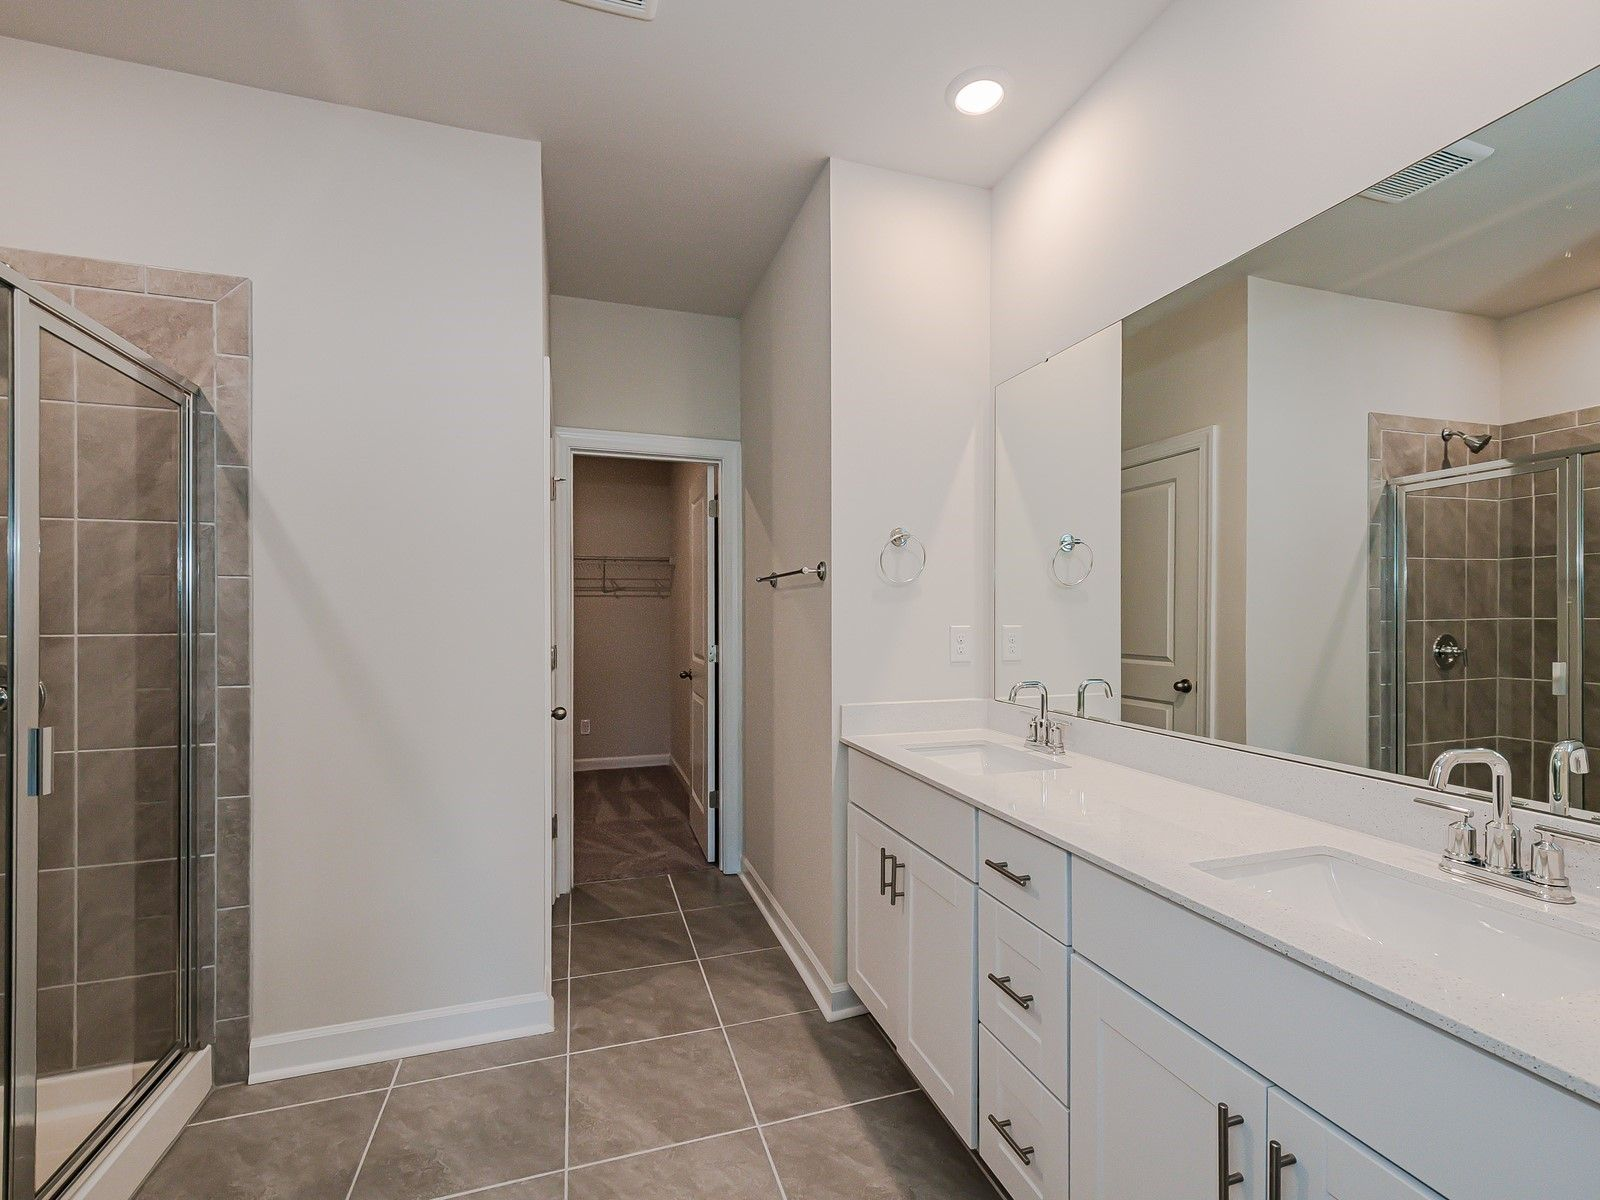 Bathroom featured in the Chandler By Meritage Homes in Charlotte, NC